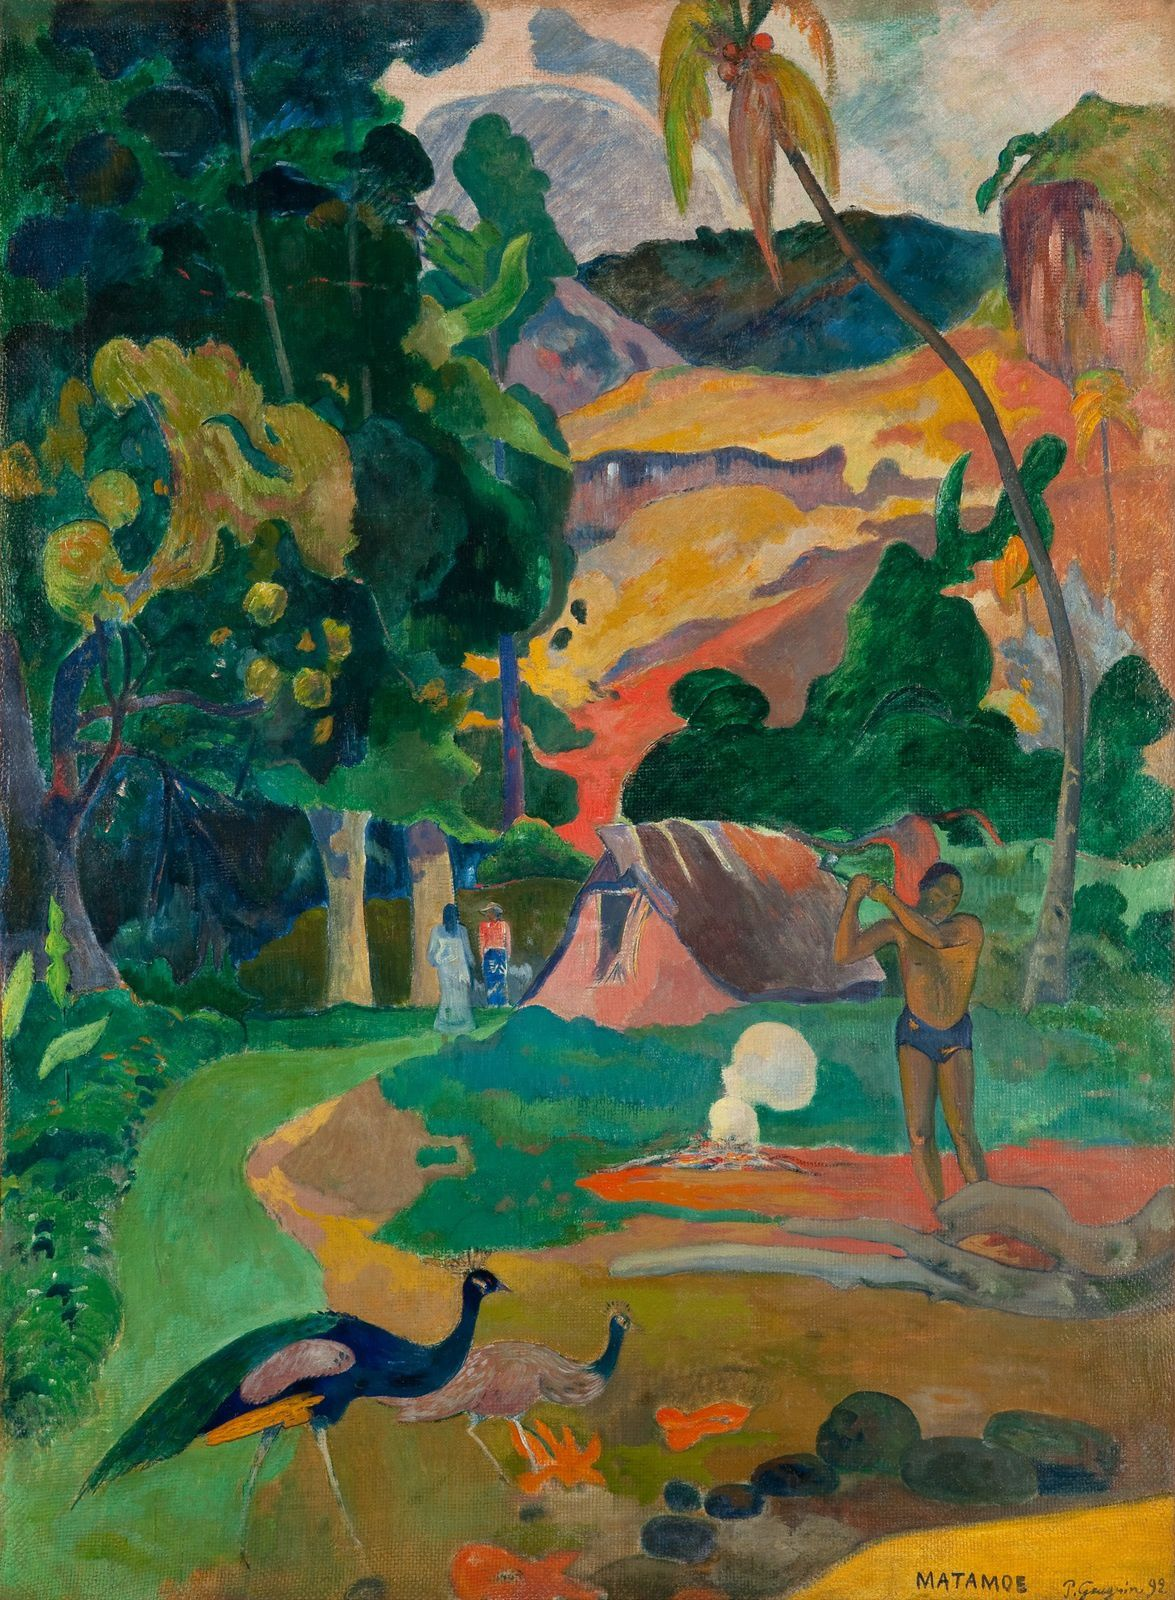 Paul Gauguin, Tahitian: Matamoe Matamoe (Death), Landscape with Peacocks, 1892, Pushkin State Museum of Fine Arts, Russie.